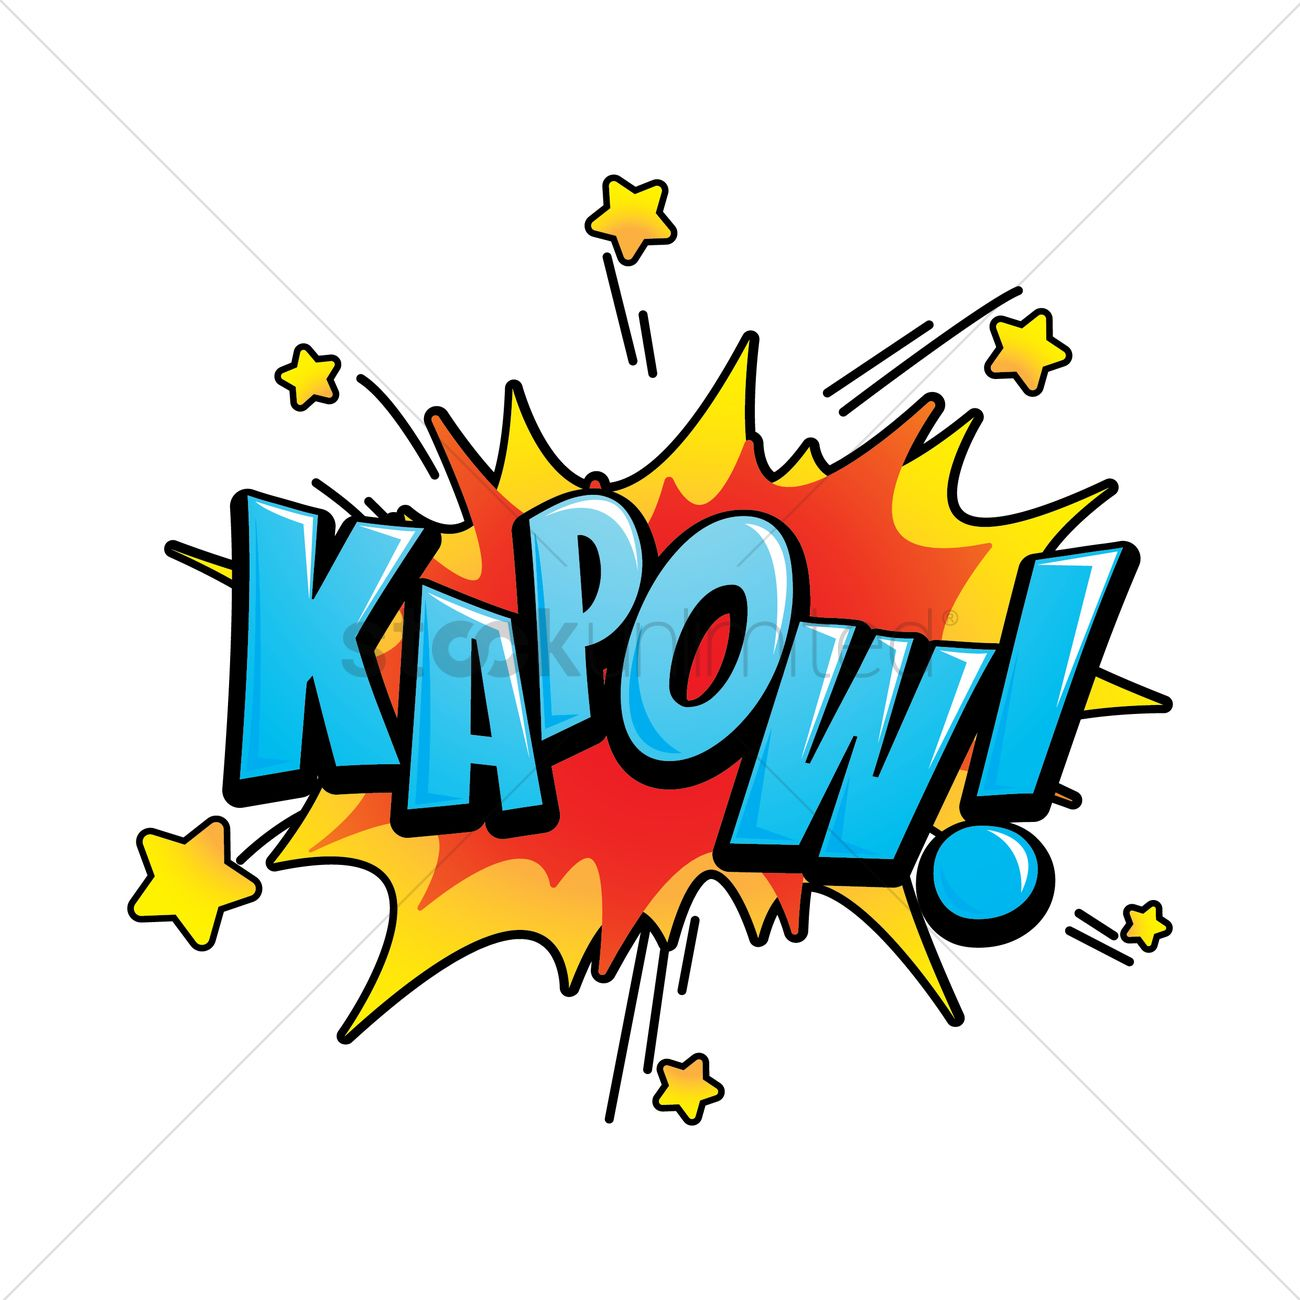 Kapow Text With Comic Effect Vector Image 1813926